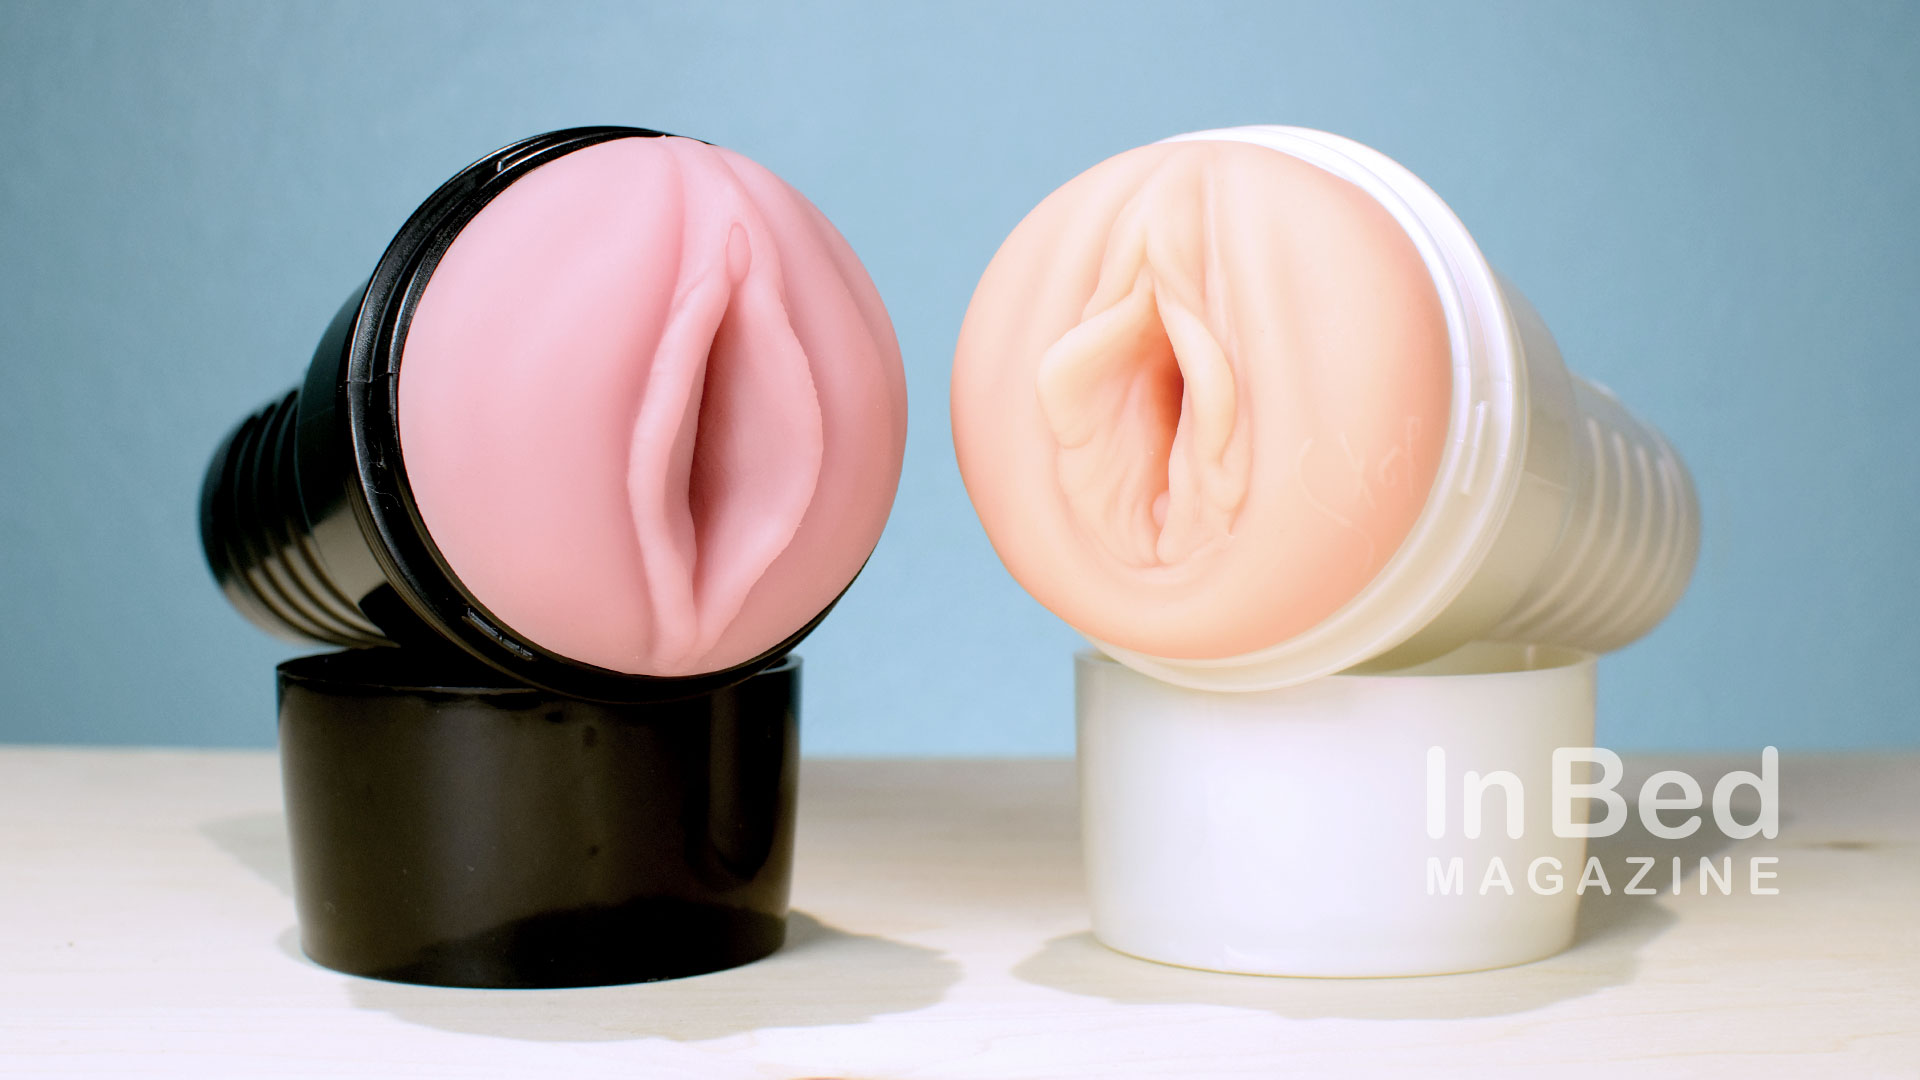 How Often Should I Powder A Fleshlight